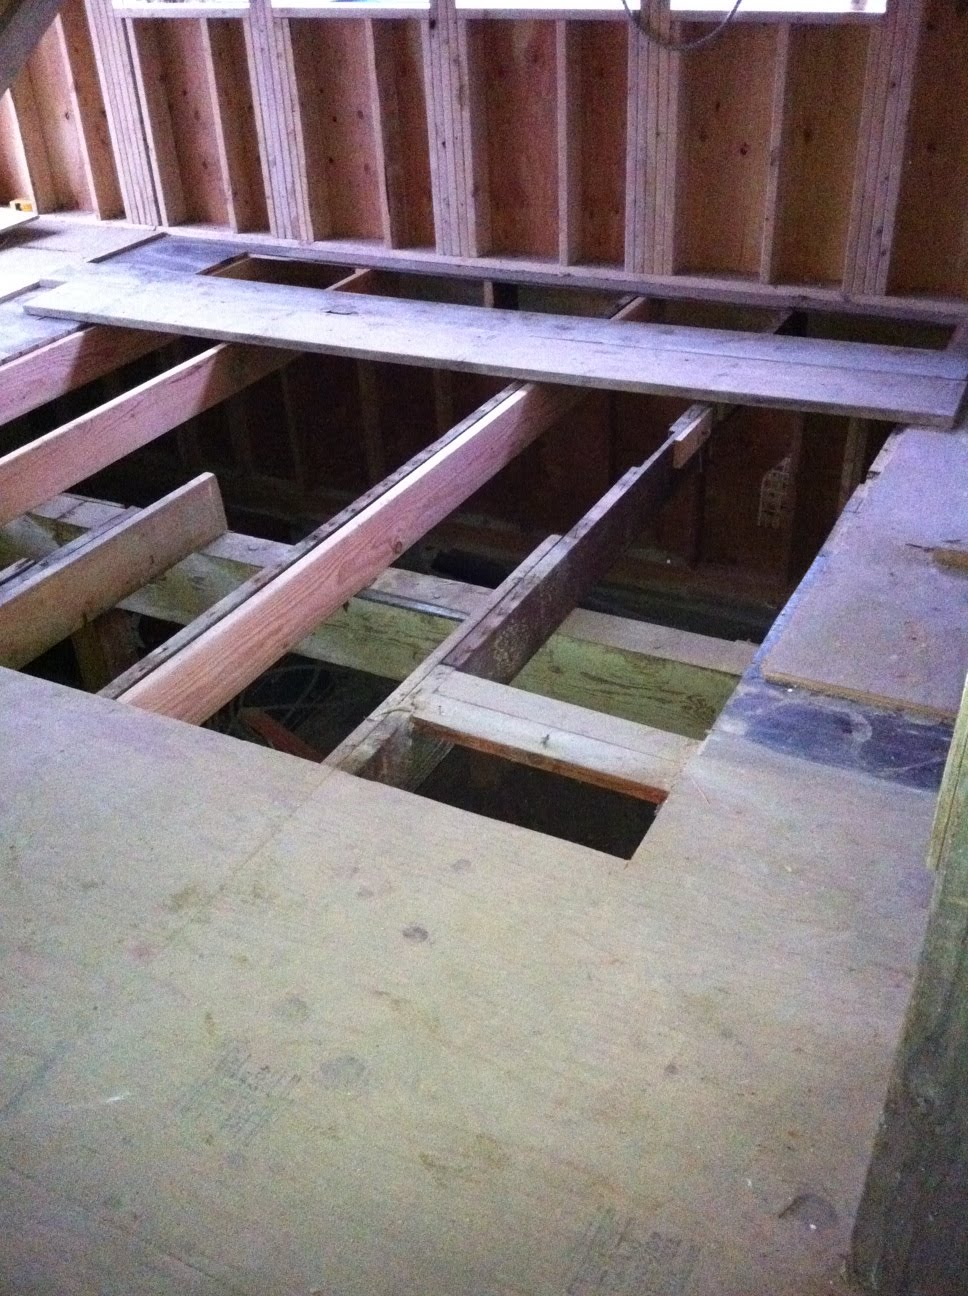 Seattle Passive Solar Home Remodel: Replacing the Bathroom